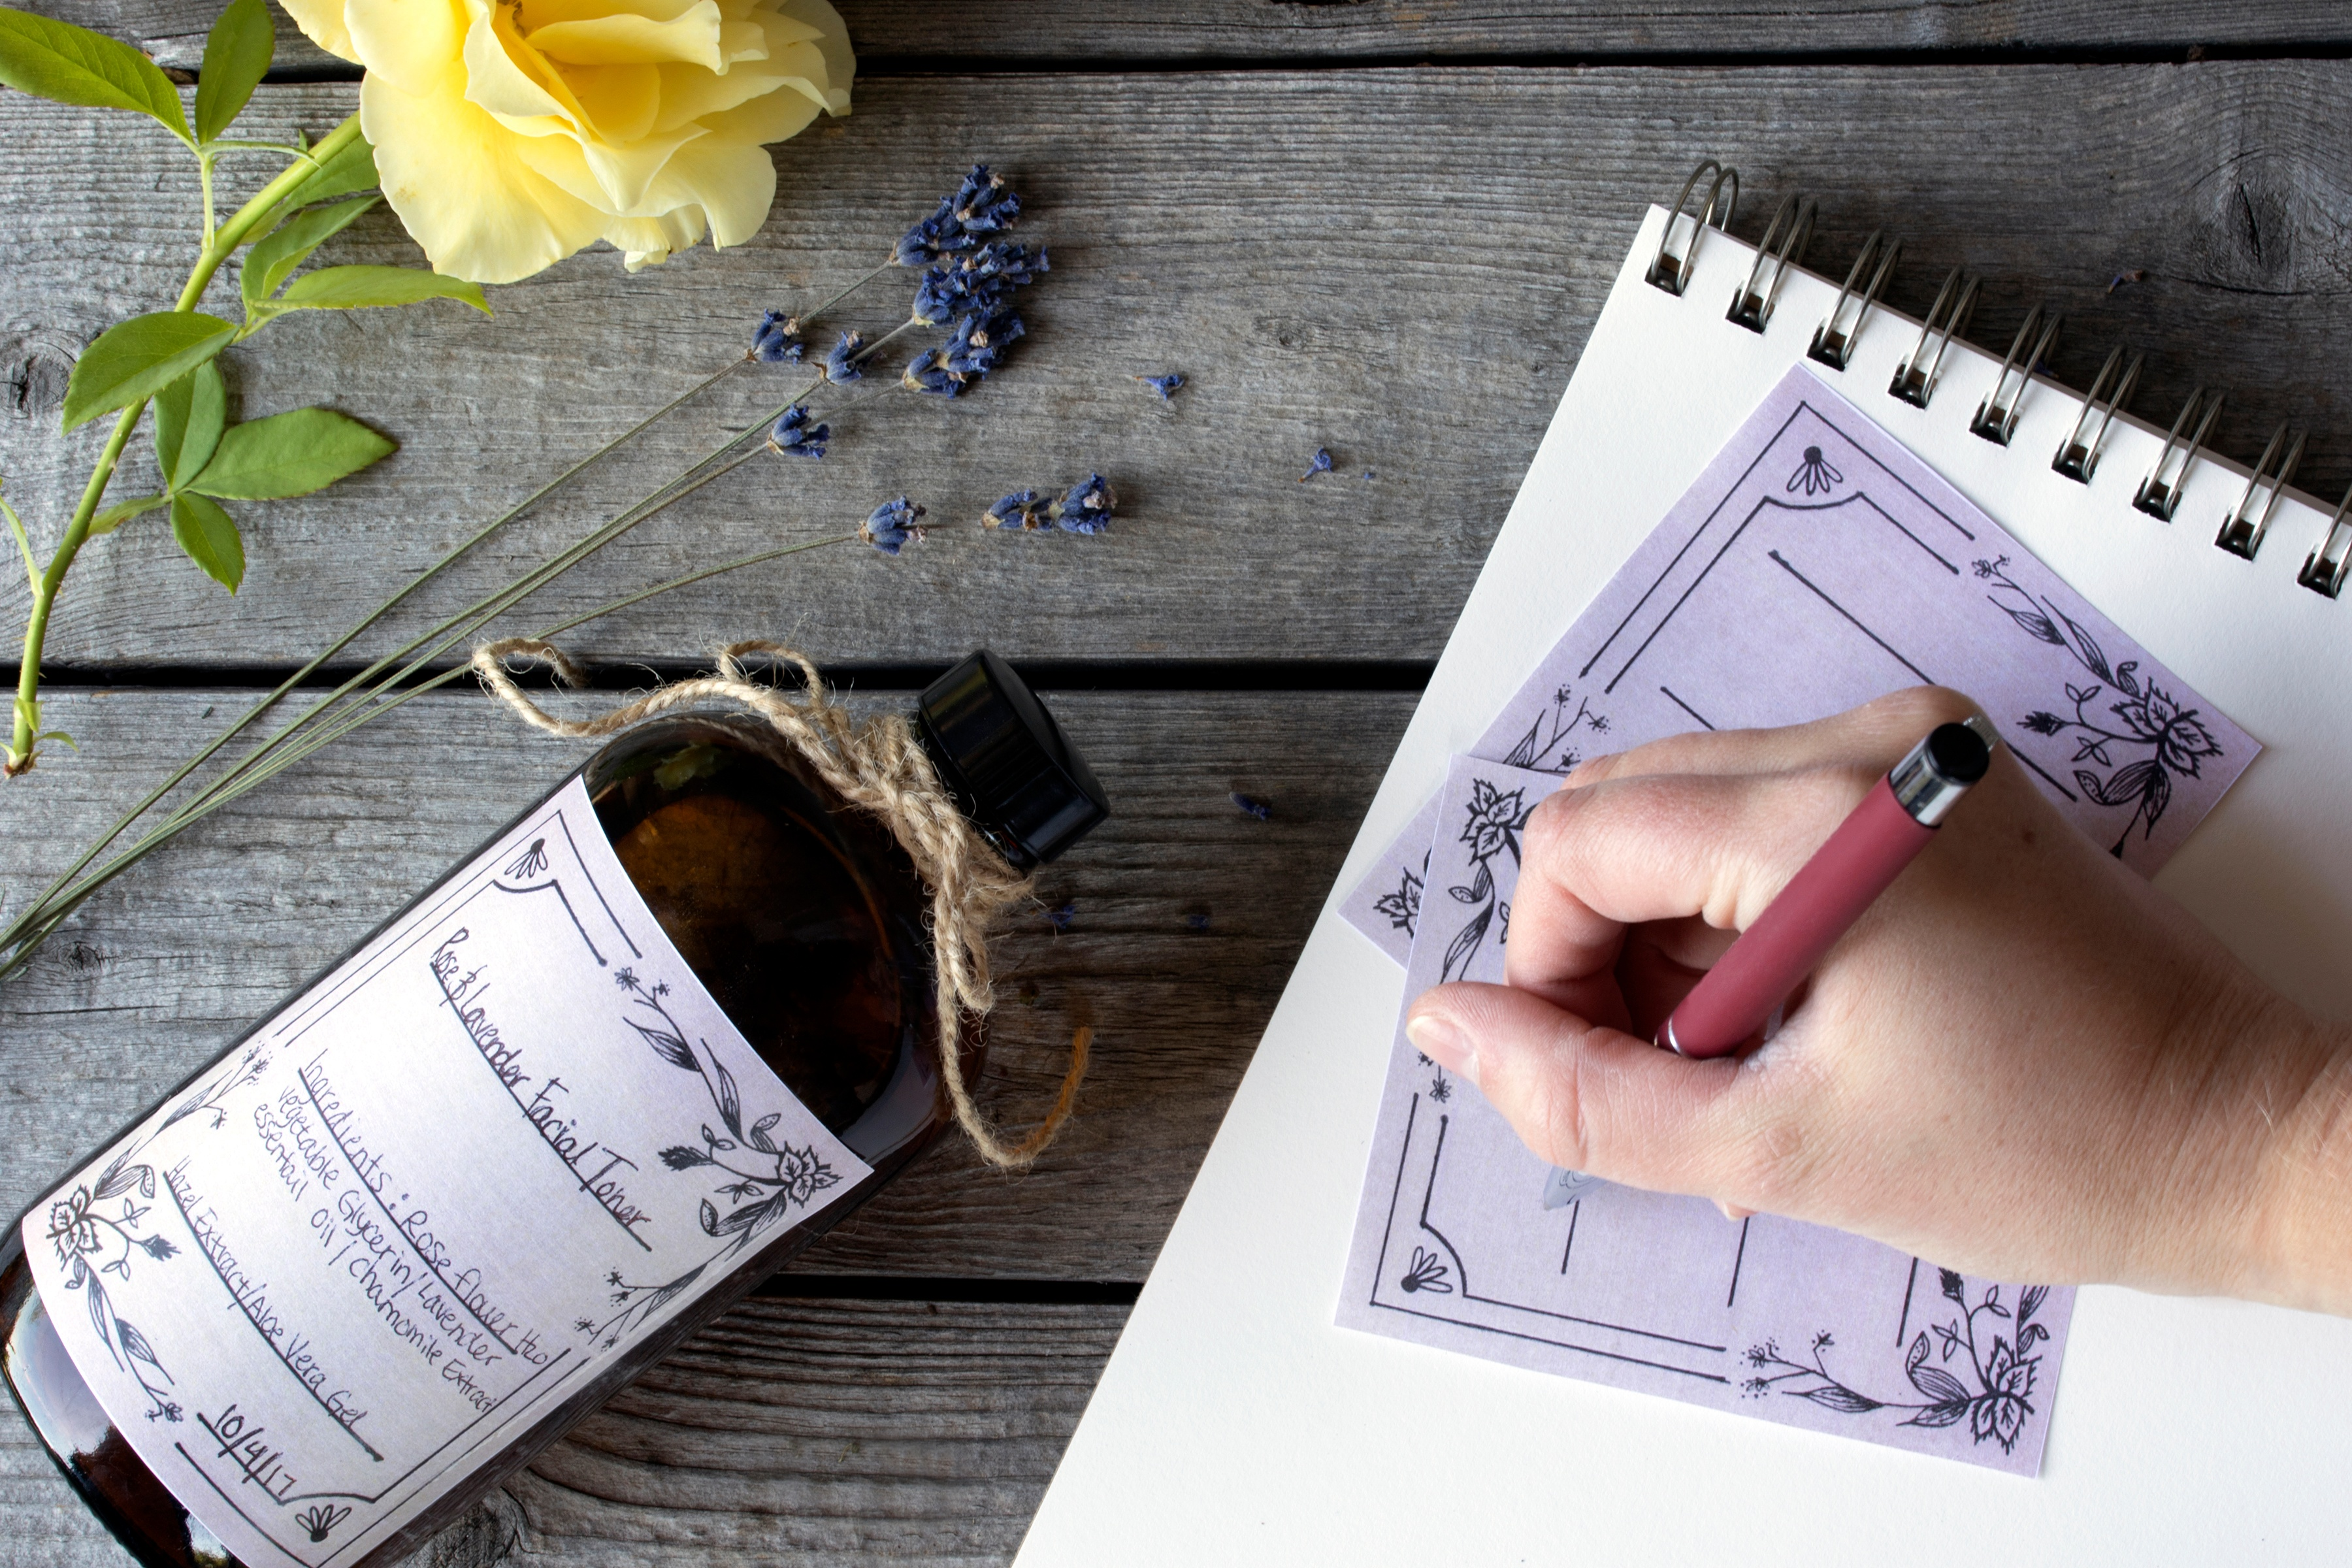 Hand filling out DIY labels for homemade tincture in amber glass bottle on wooden table with flowers